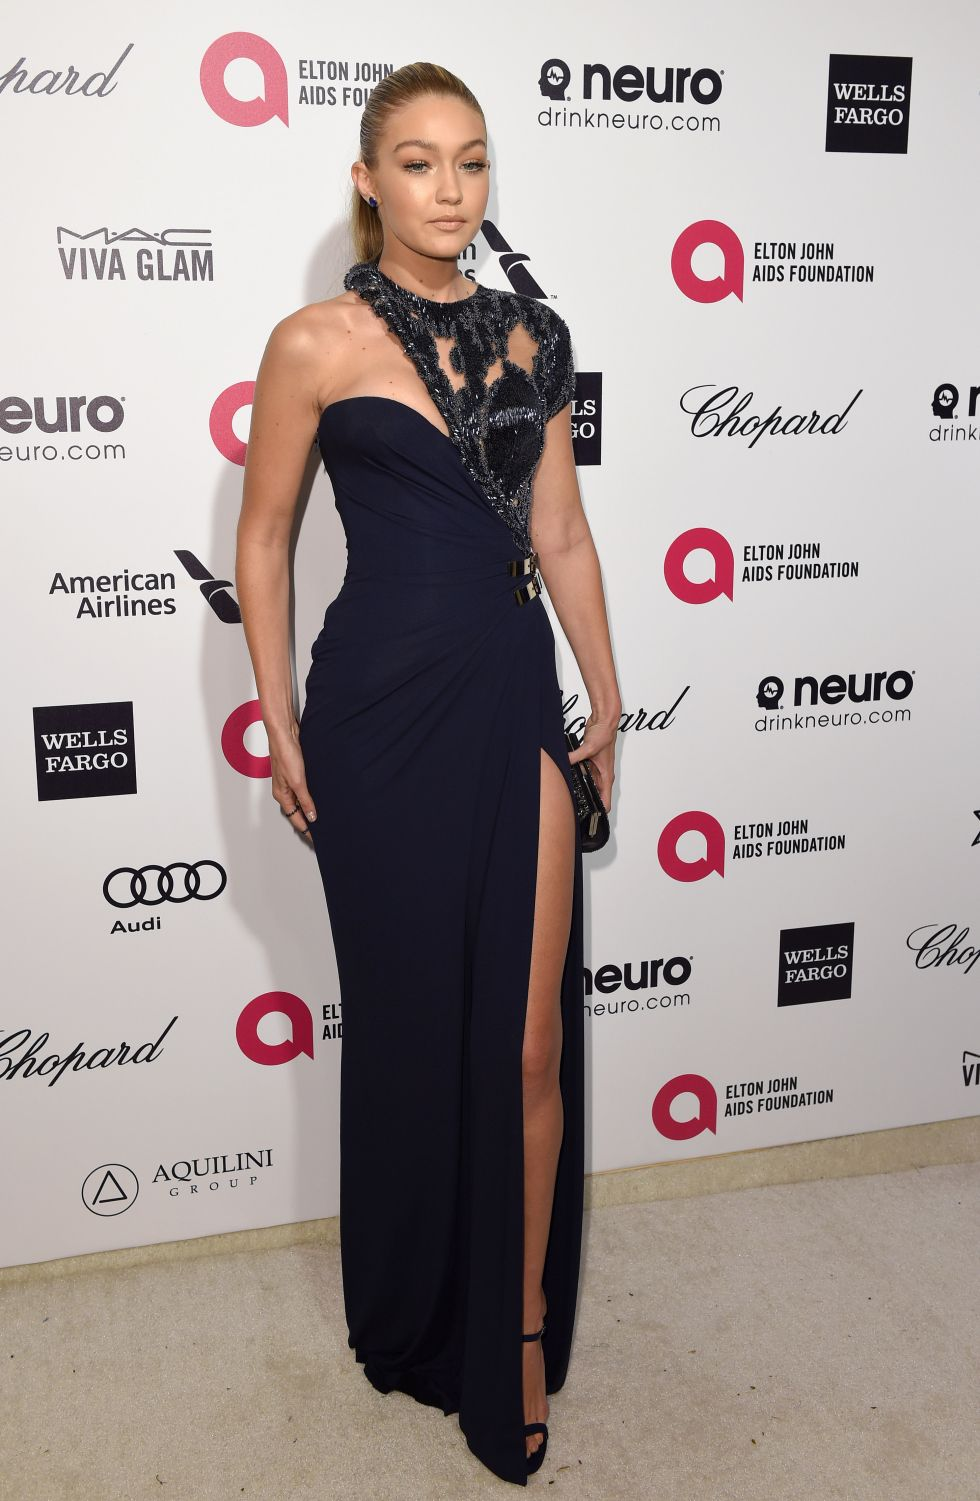 At the Elton John AIDS Foundation Academy Awards Viewing Party